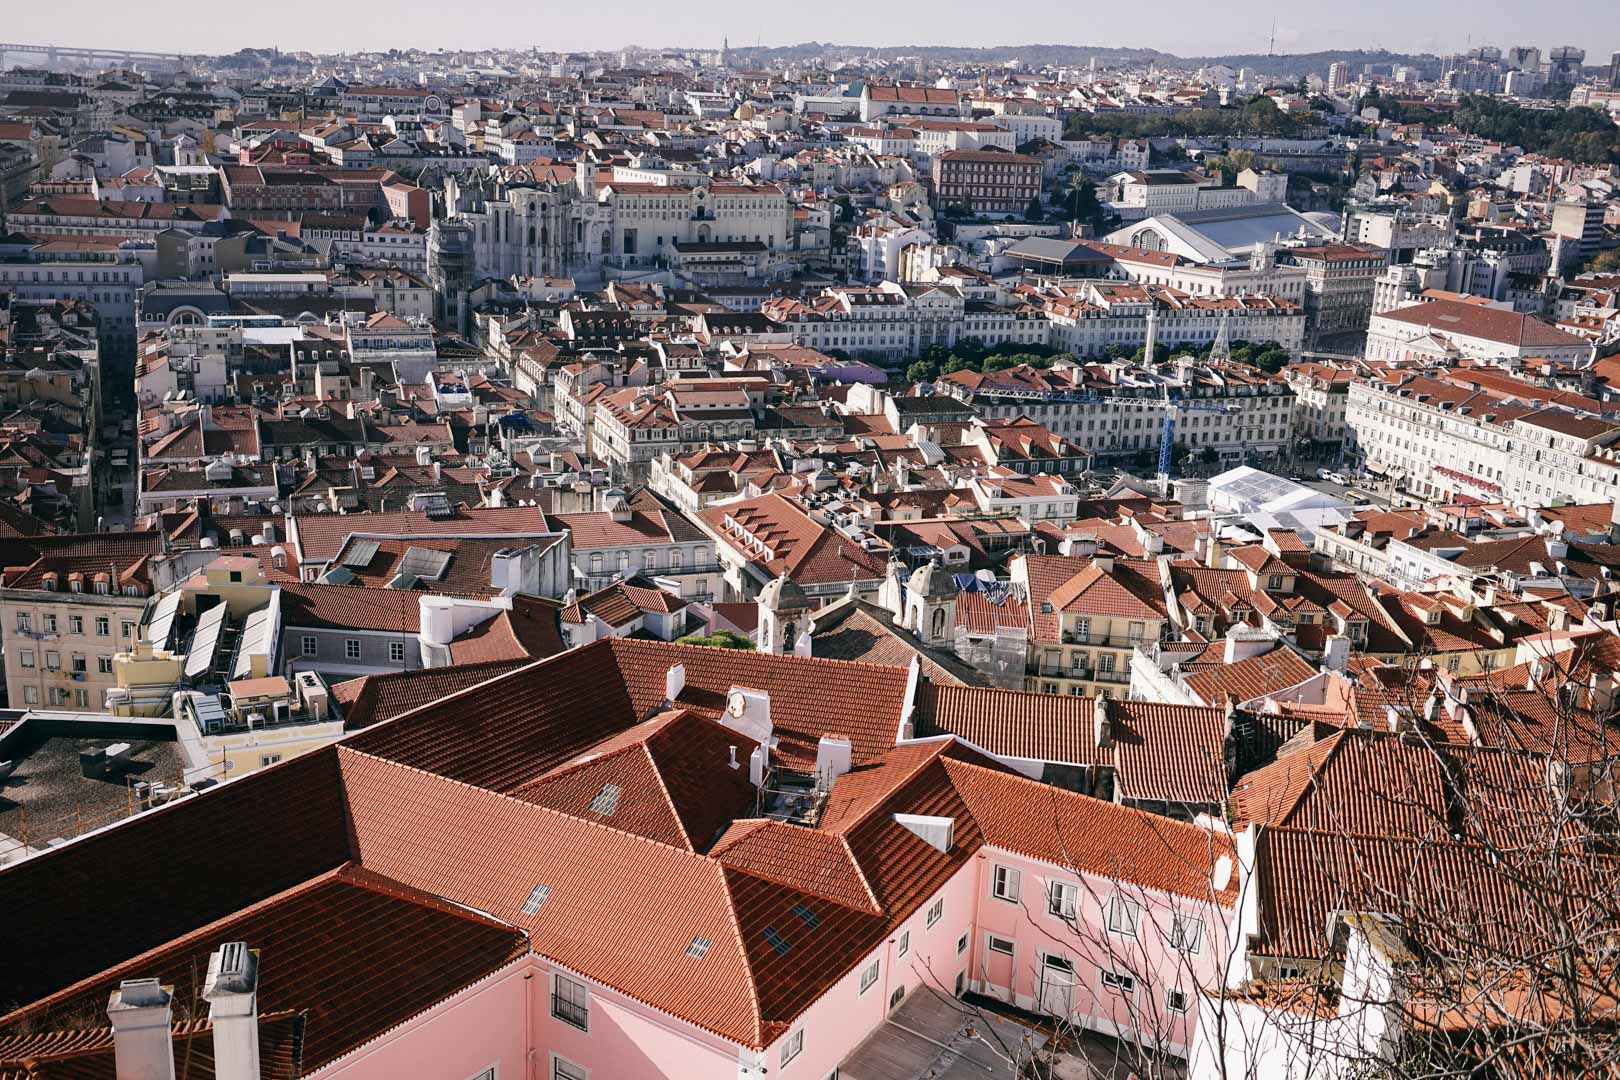 Superlative views over the city's red rooftops